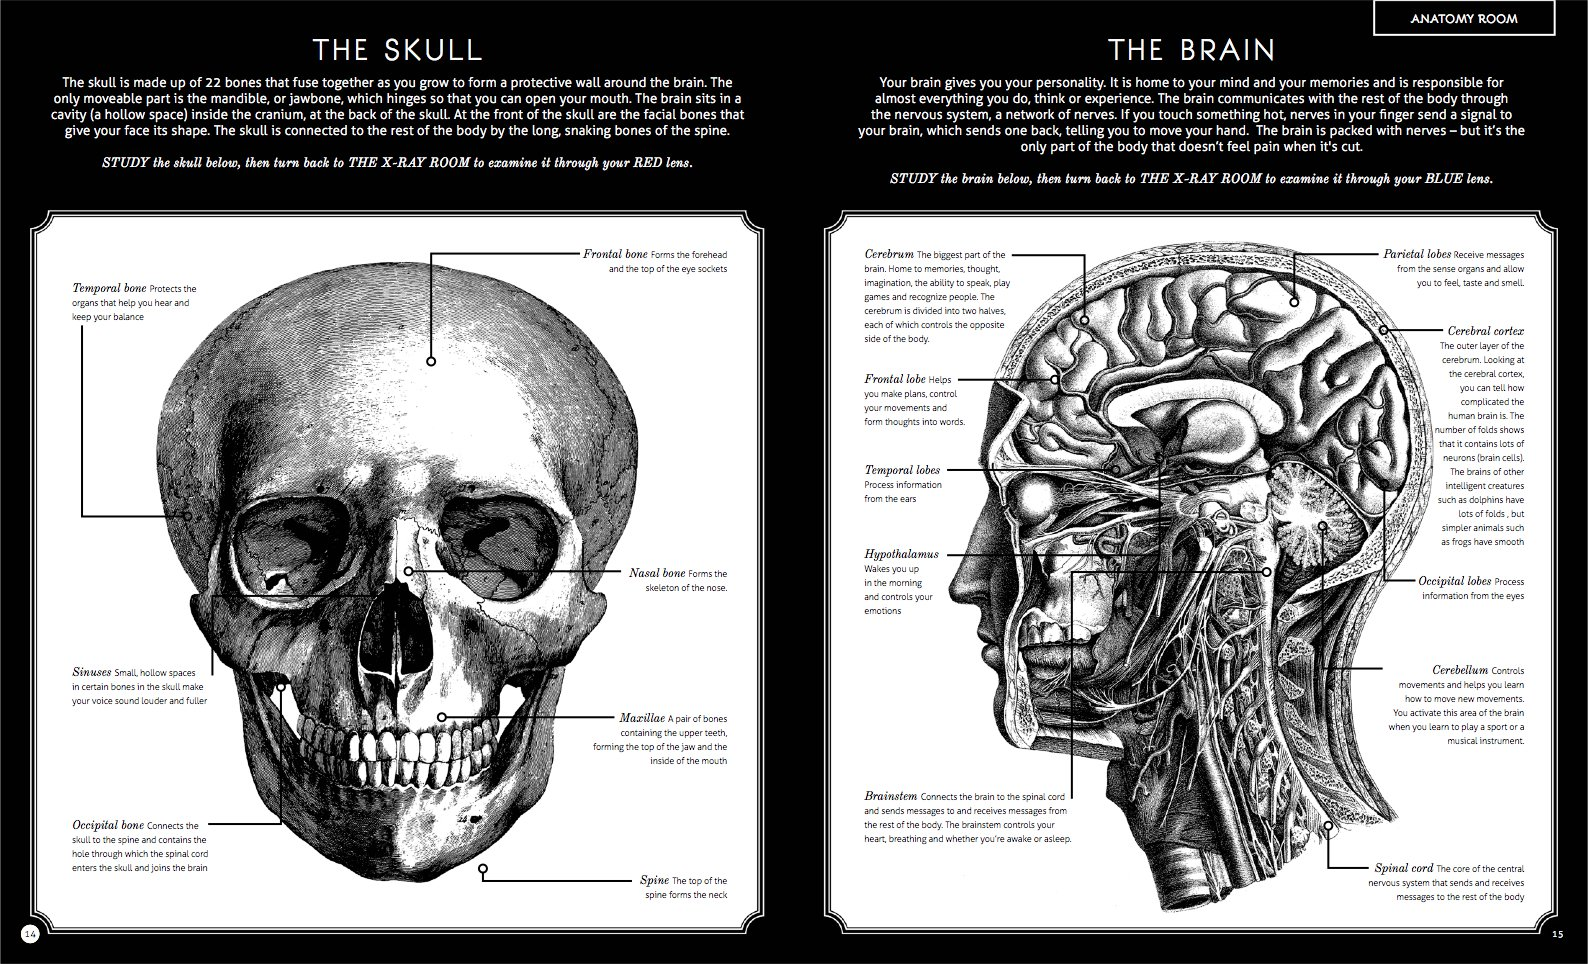 Illumanatomy: See inside the human body with your magic viewing lens ...